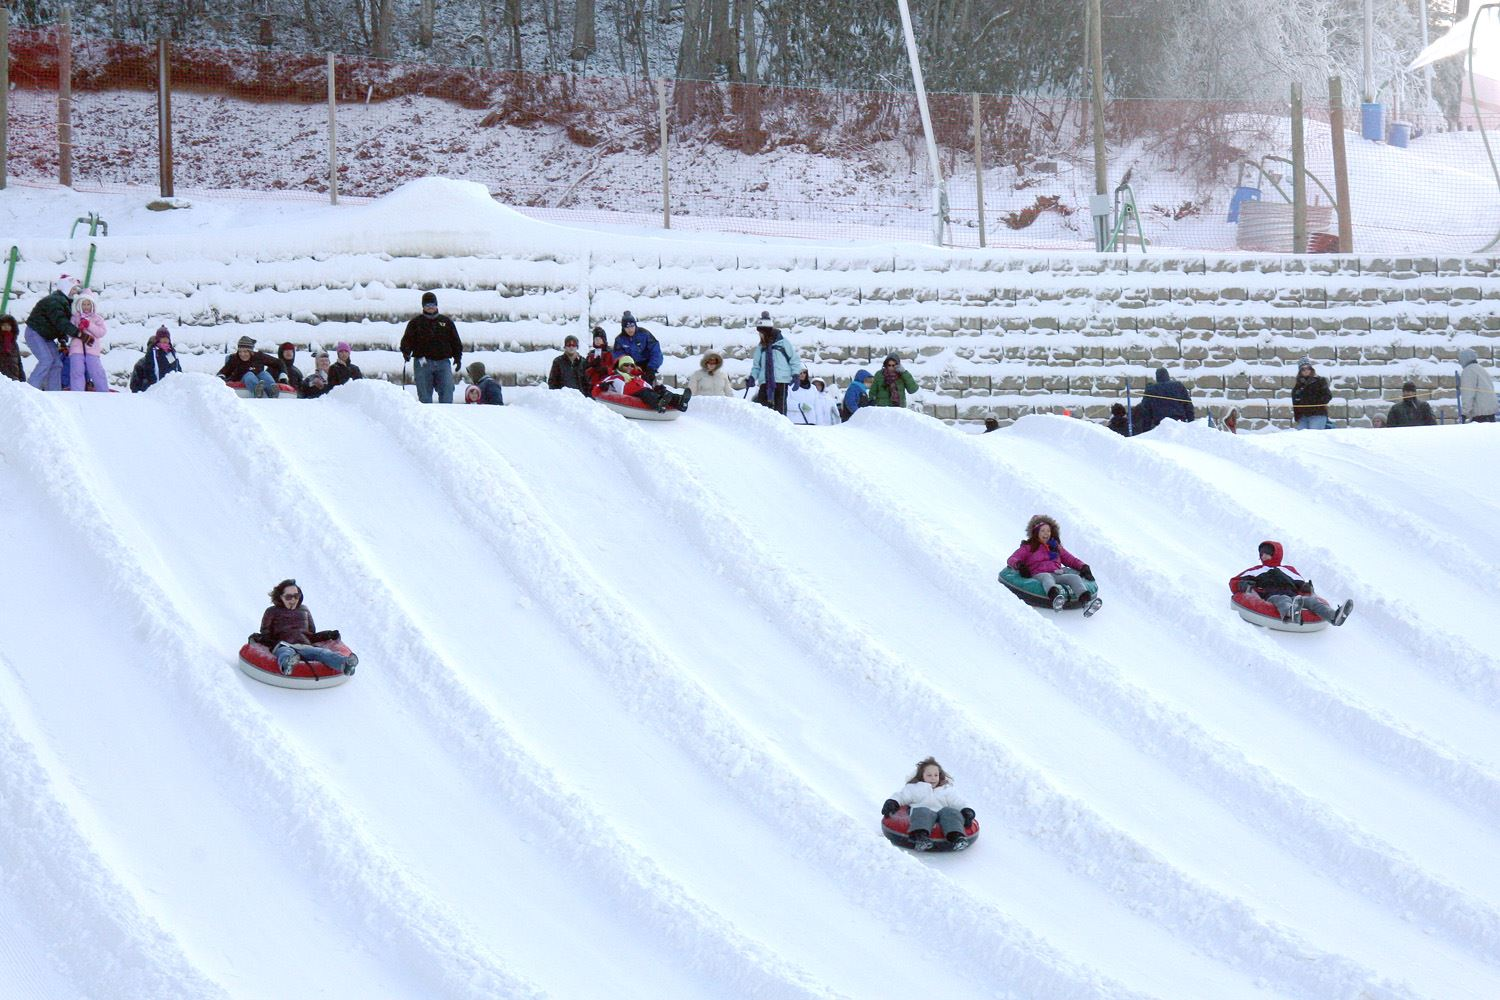 Snow tubing at Ober Gatlinburg